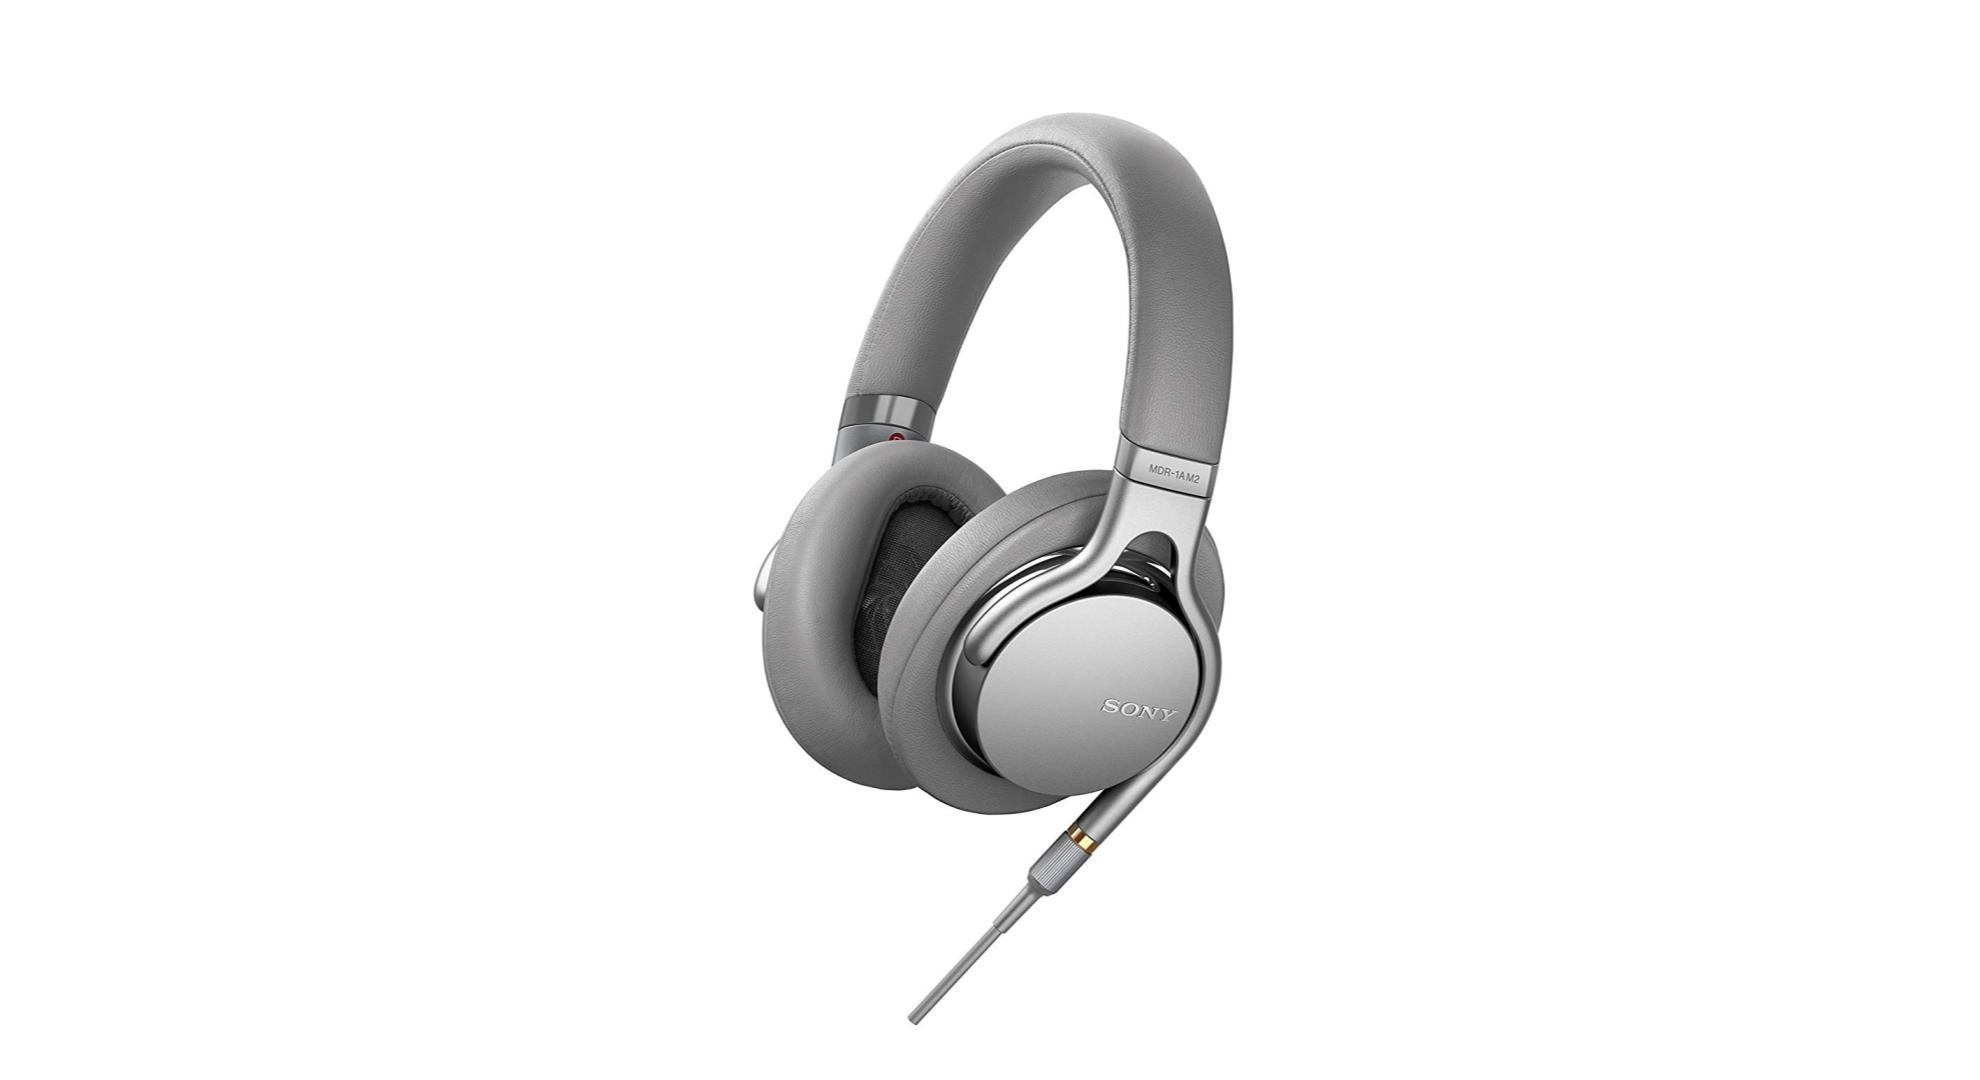 🔥 Bon plan : le casque Sony MDR-1AM2 descend à 116 euros au lieu de 249 euros